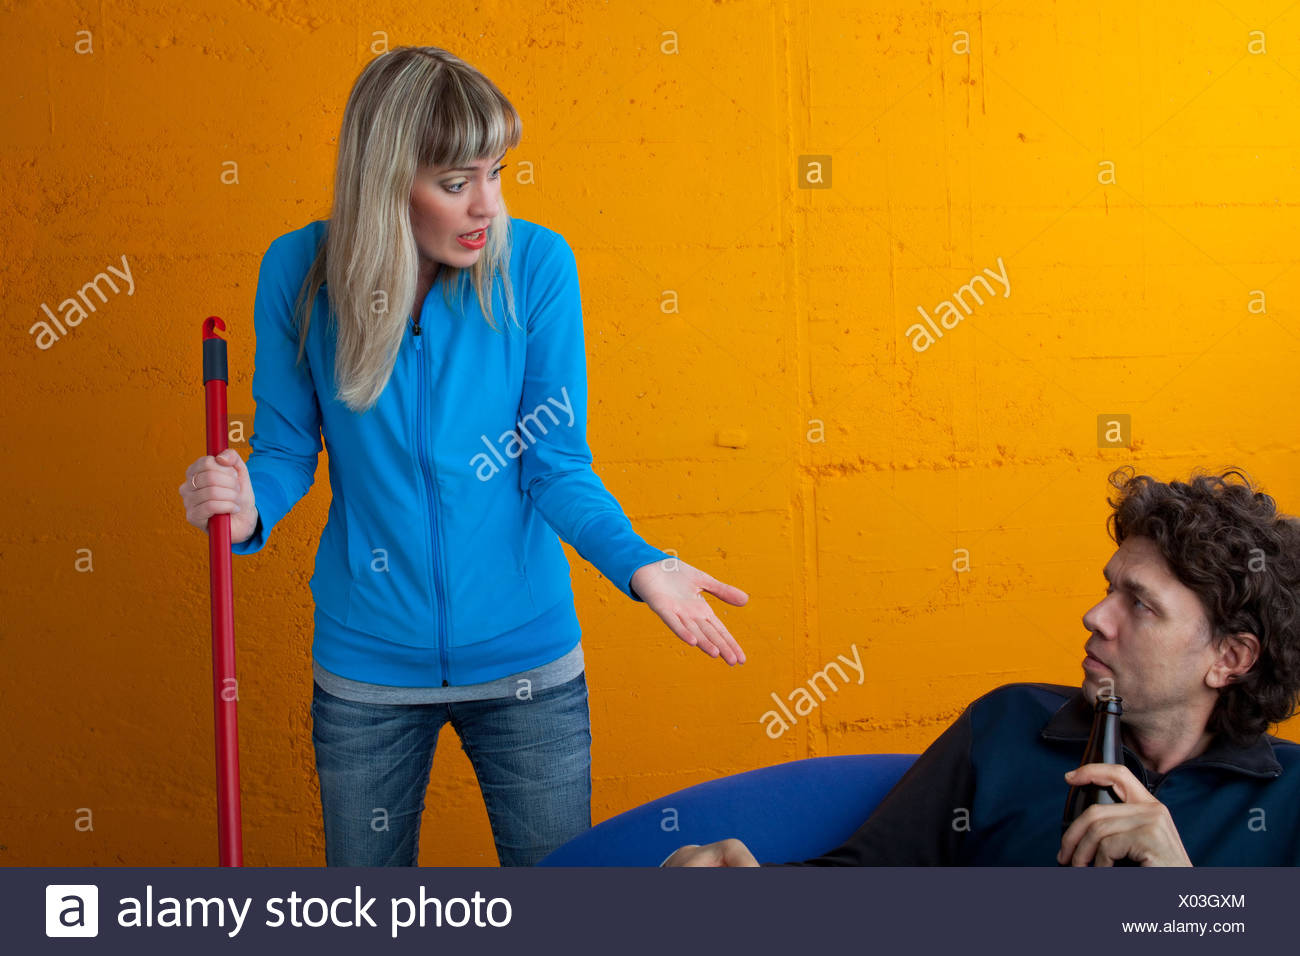 respectively - Stock Image